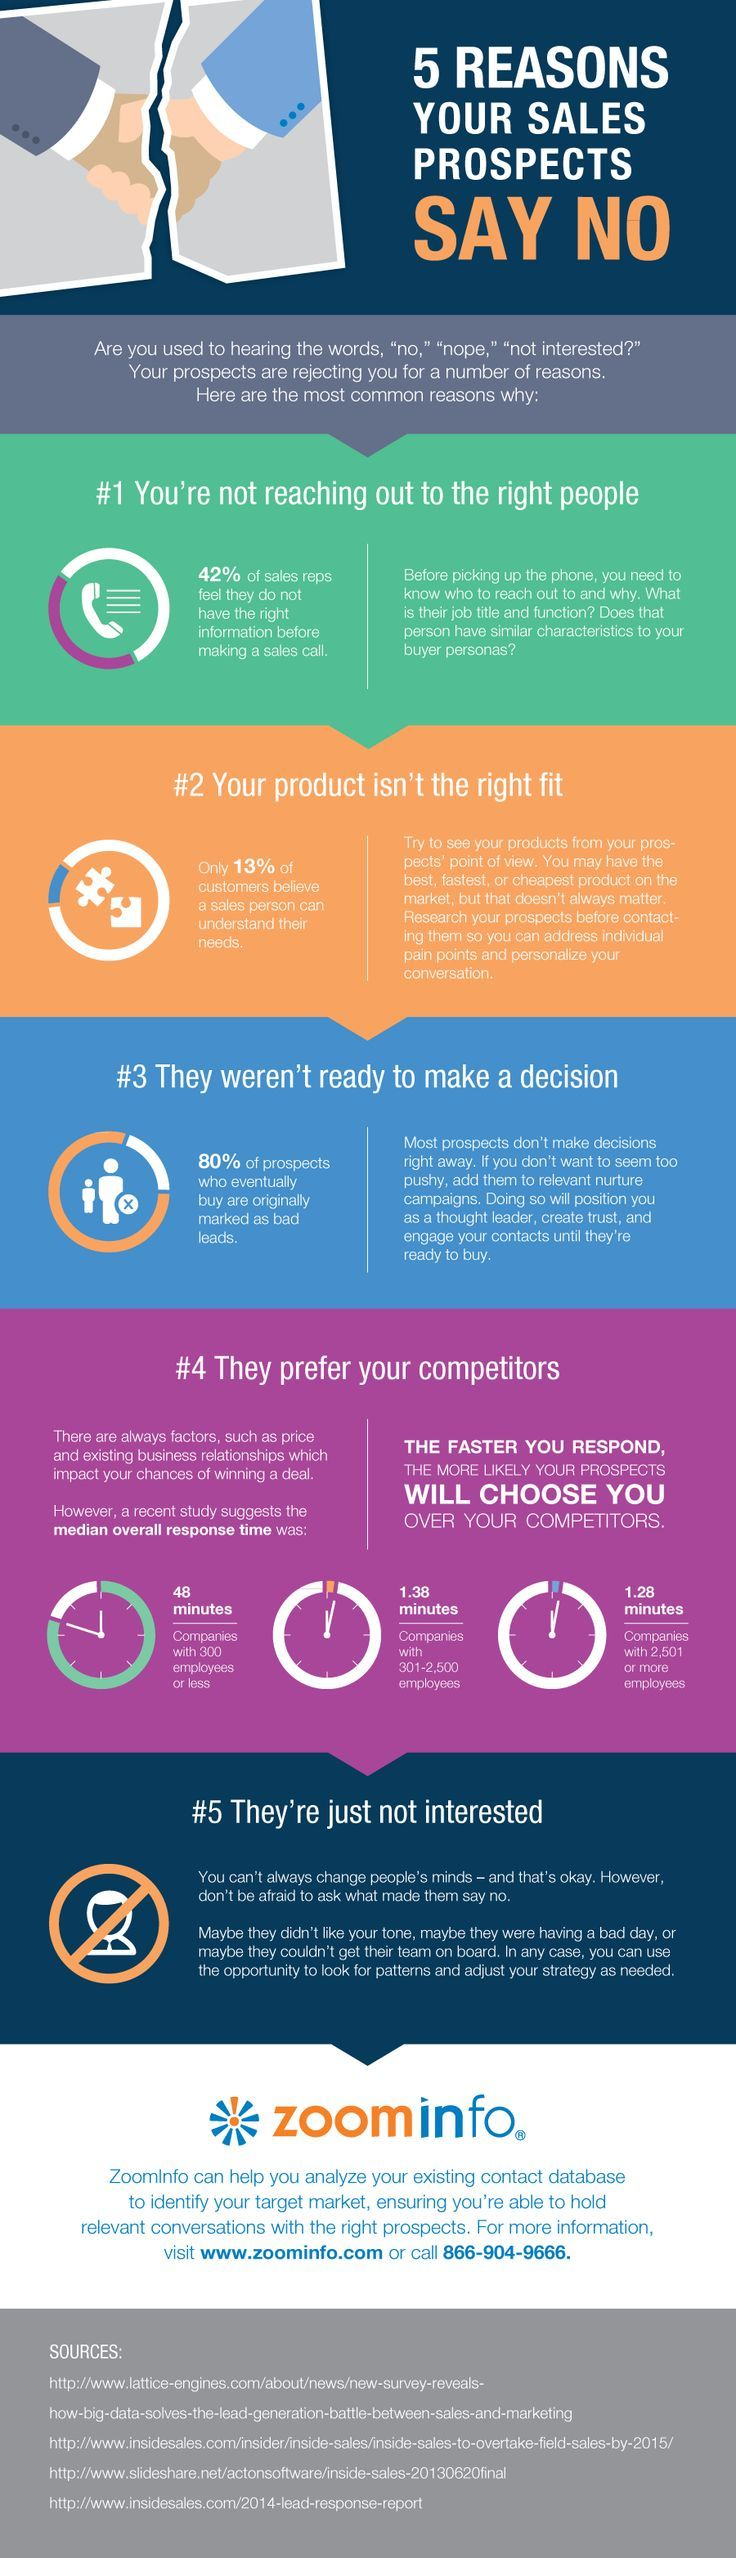 5 Reasons Your B2B Leads say No. Learn how to overcome those objections and move towards the right ones.